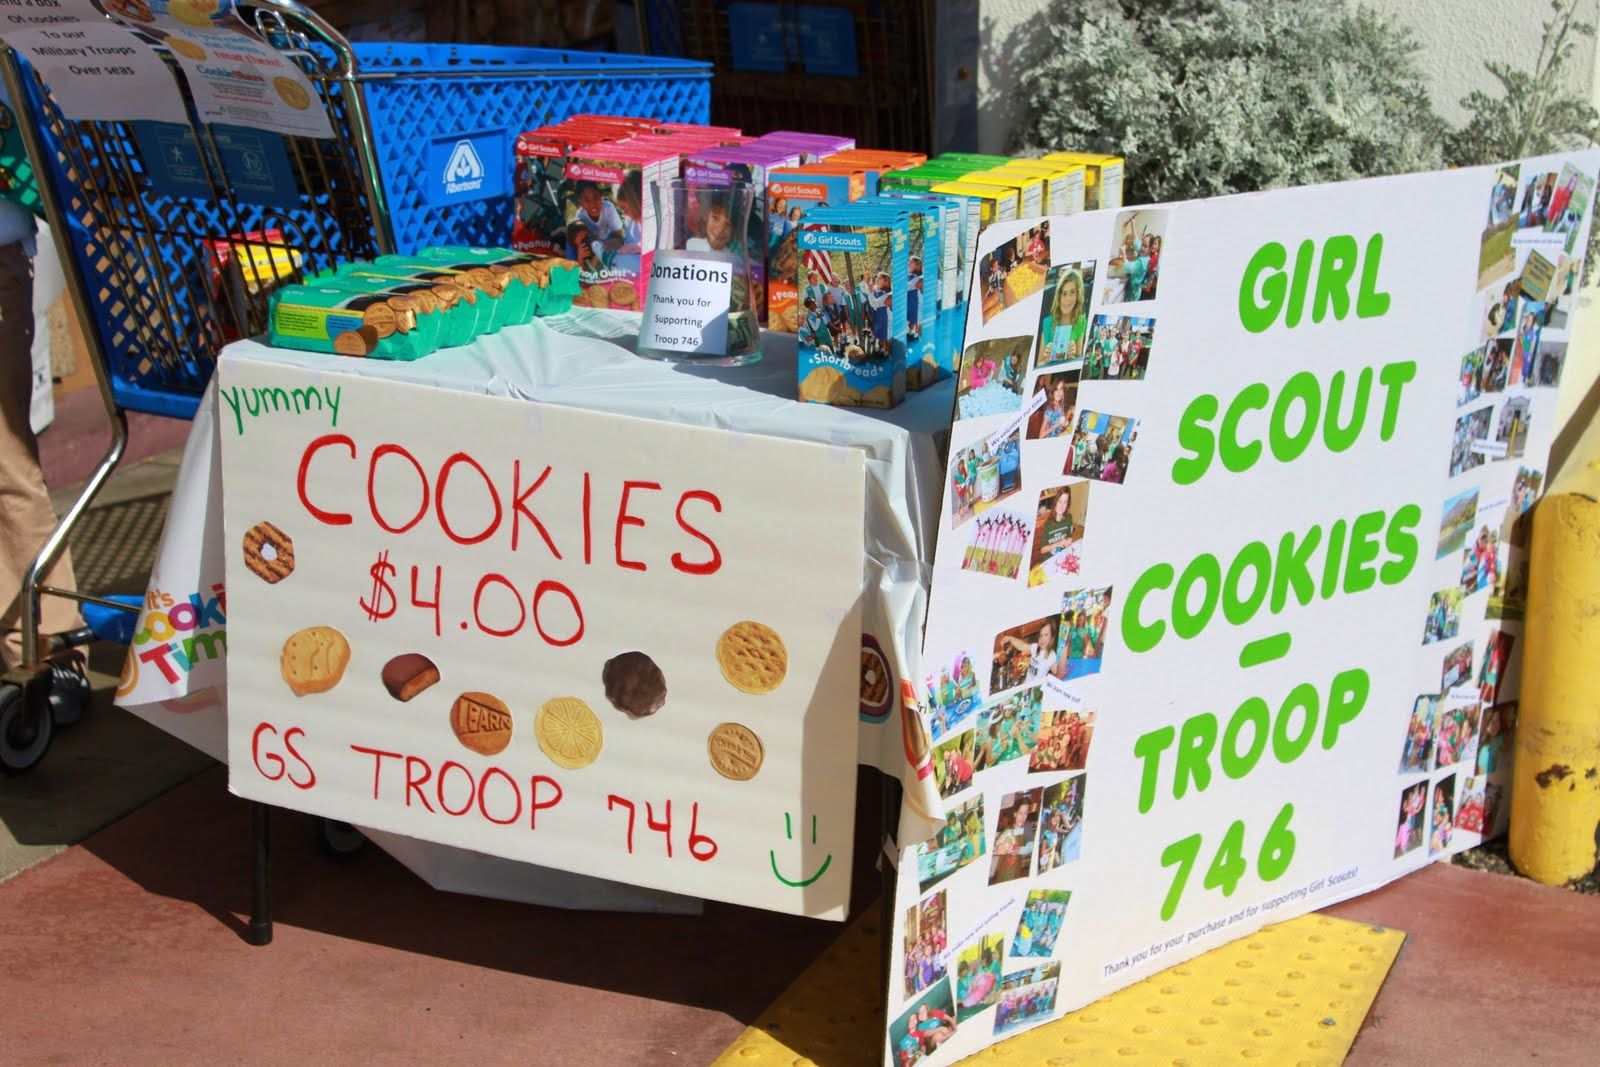 HUNTINGTON BEACH GIRL SCOUT TROOP 746: THE LAST DAY OF OUR SAN FRANCISCO TRIP